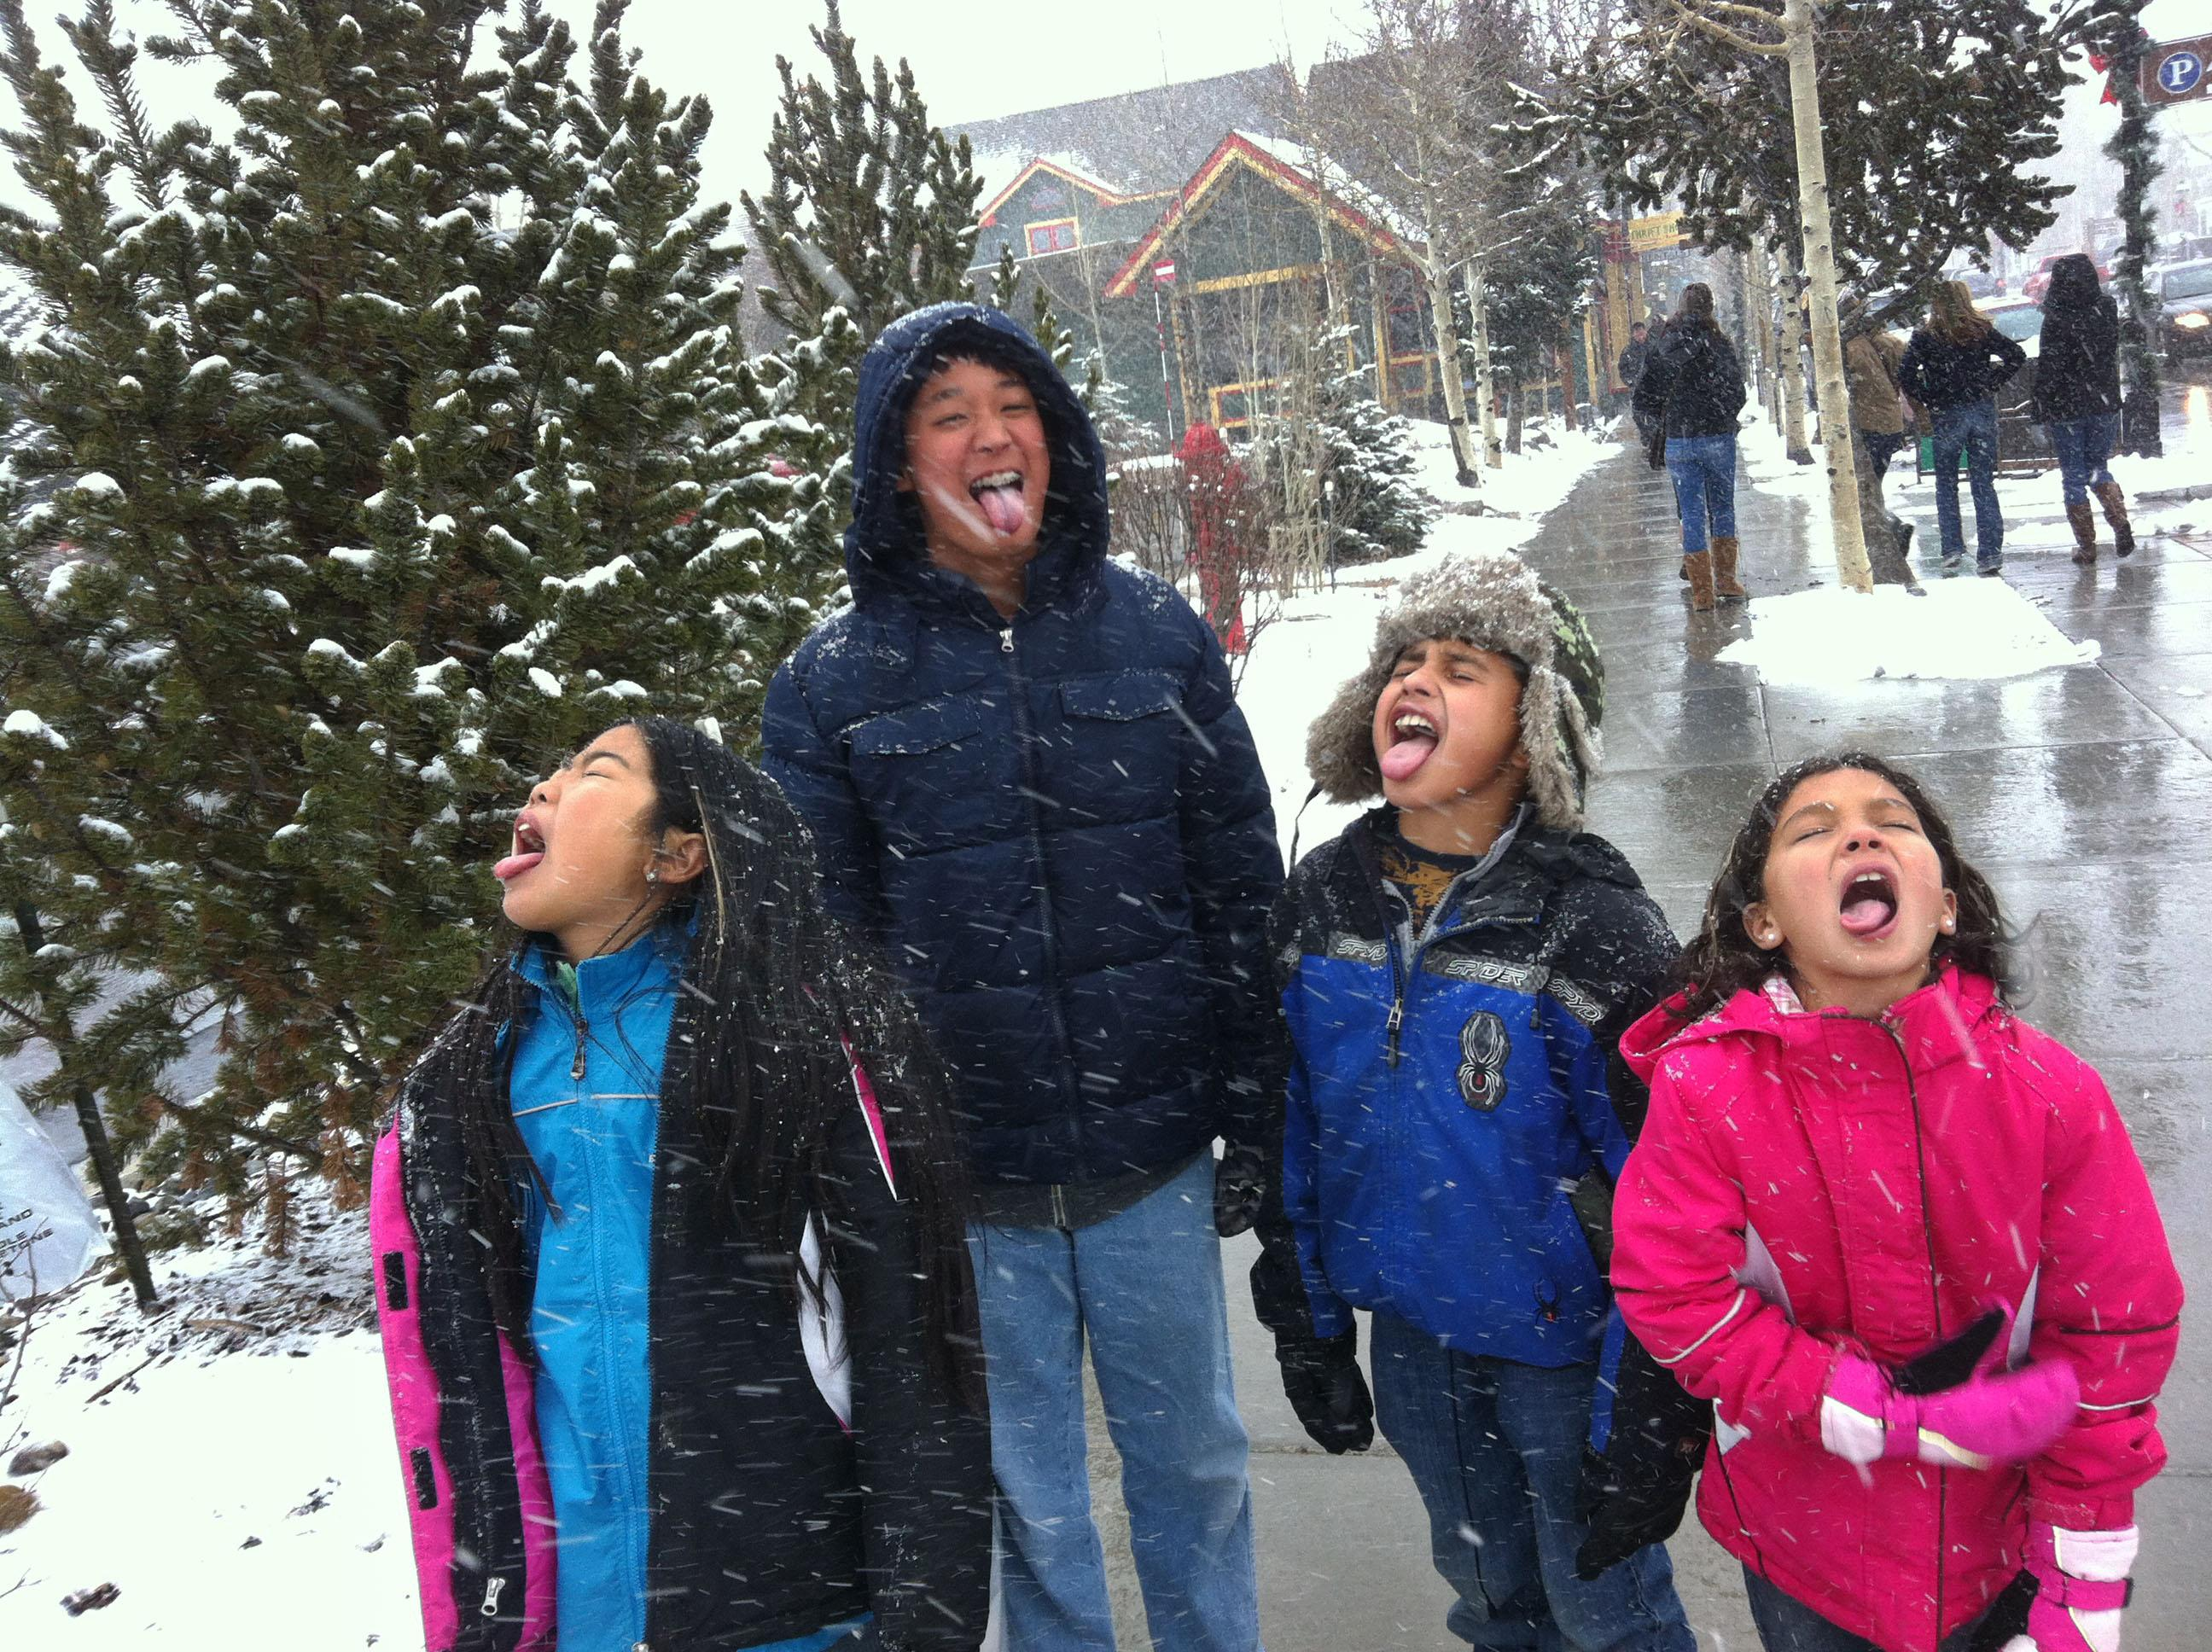 """In this November 2012 photo provided by the family, adopted siblings, from left, Anna Rosati, 12, Daniel, 13, Joshua, 11, and Hope, 9, play in the snow in Breckenridge, Colo. Their adoptive mother, Kelly Rosati, a vice president with the Focus on the Family group, says, """"Our focus is kids who need families, not families who need kids."""" She and her husband, adopted the four children from foster care in Hawaii. (AP Photo/Kelly Rosati)"""